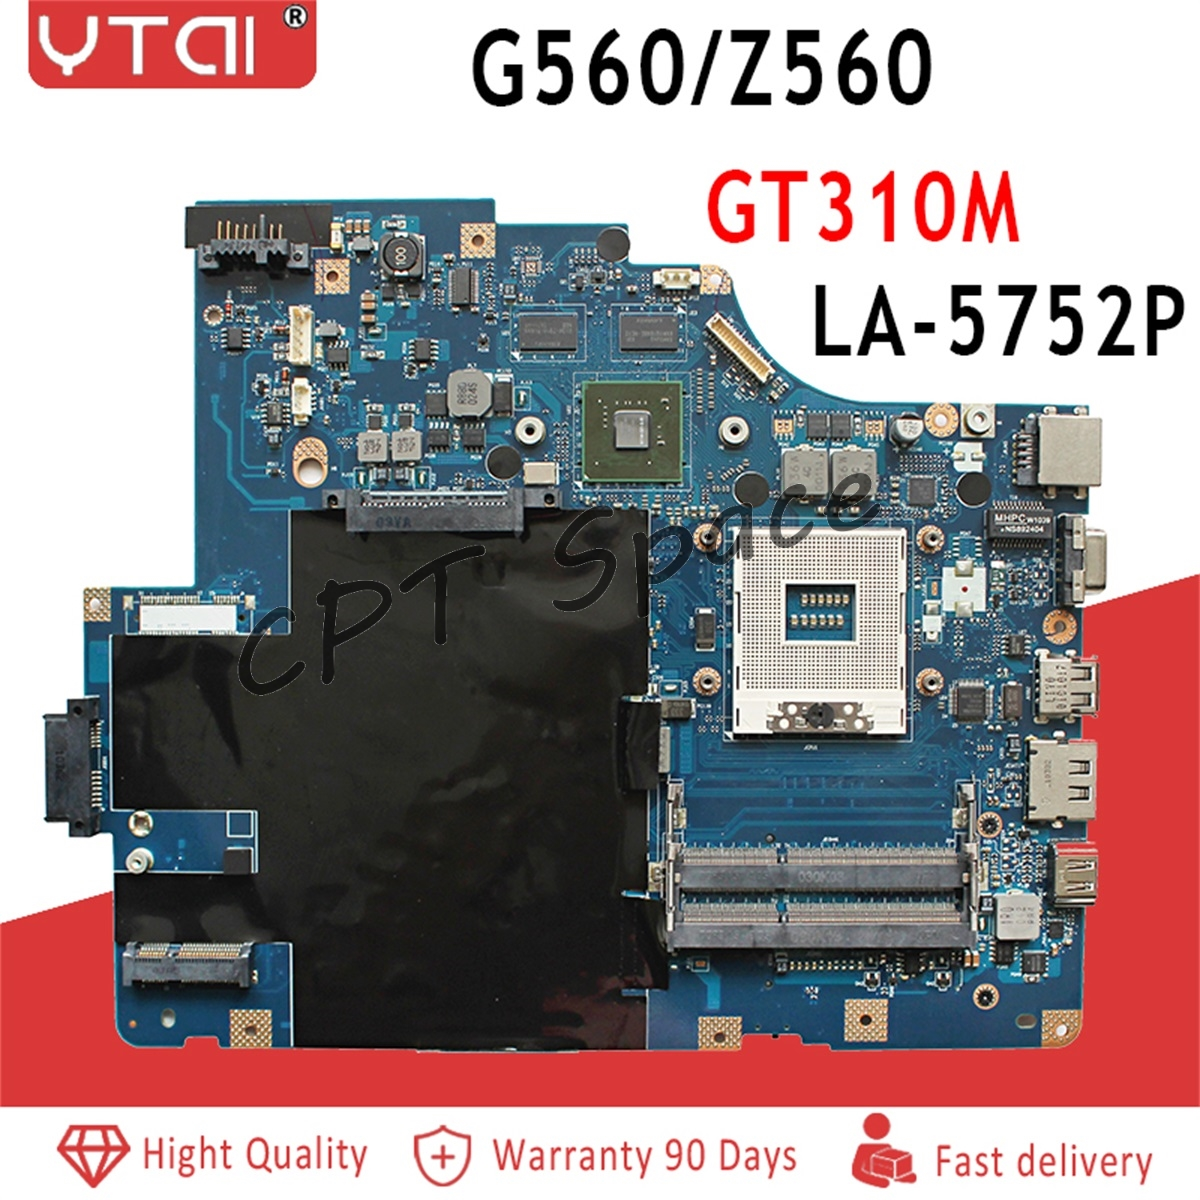 G560 Motherboard For Lenovo G560 Z560 Laptop Motherboard NIWE2 LA 5752P Rev 1 0 with GT310M